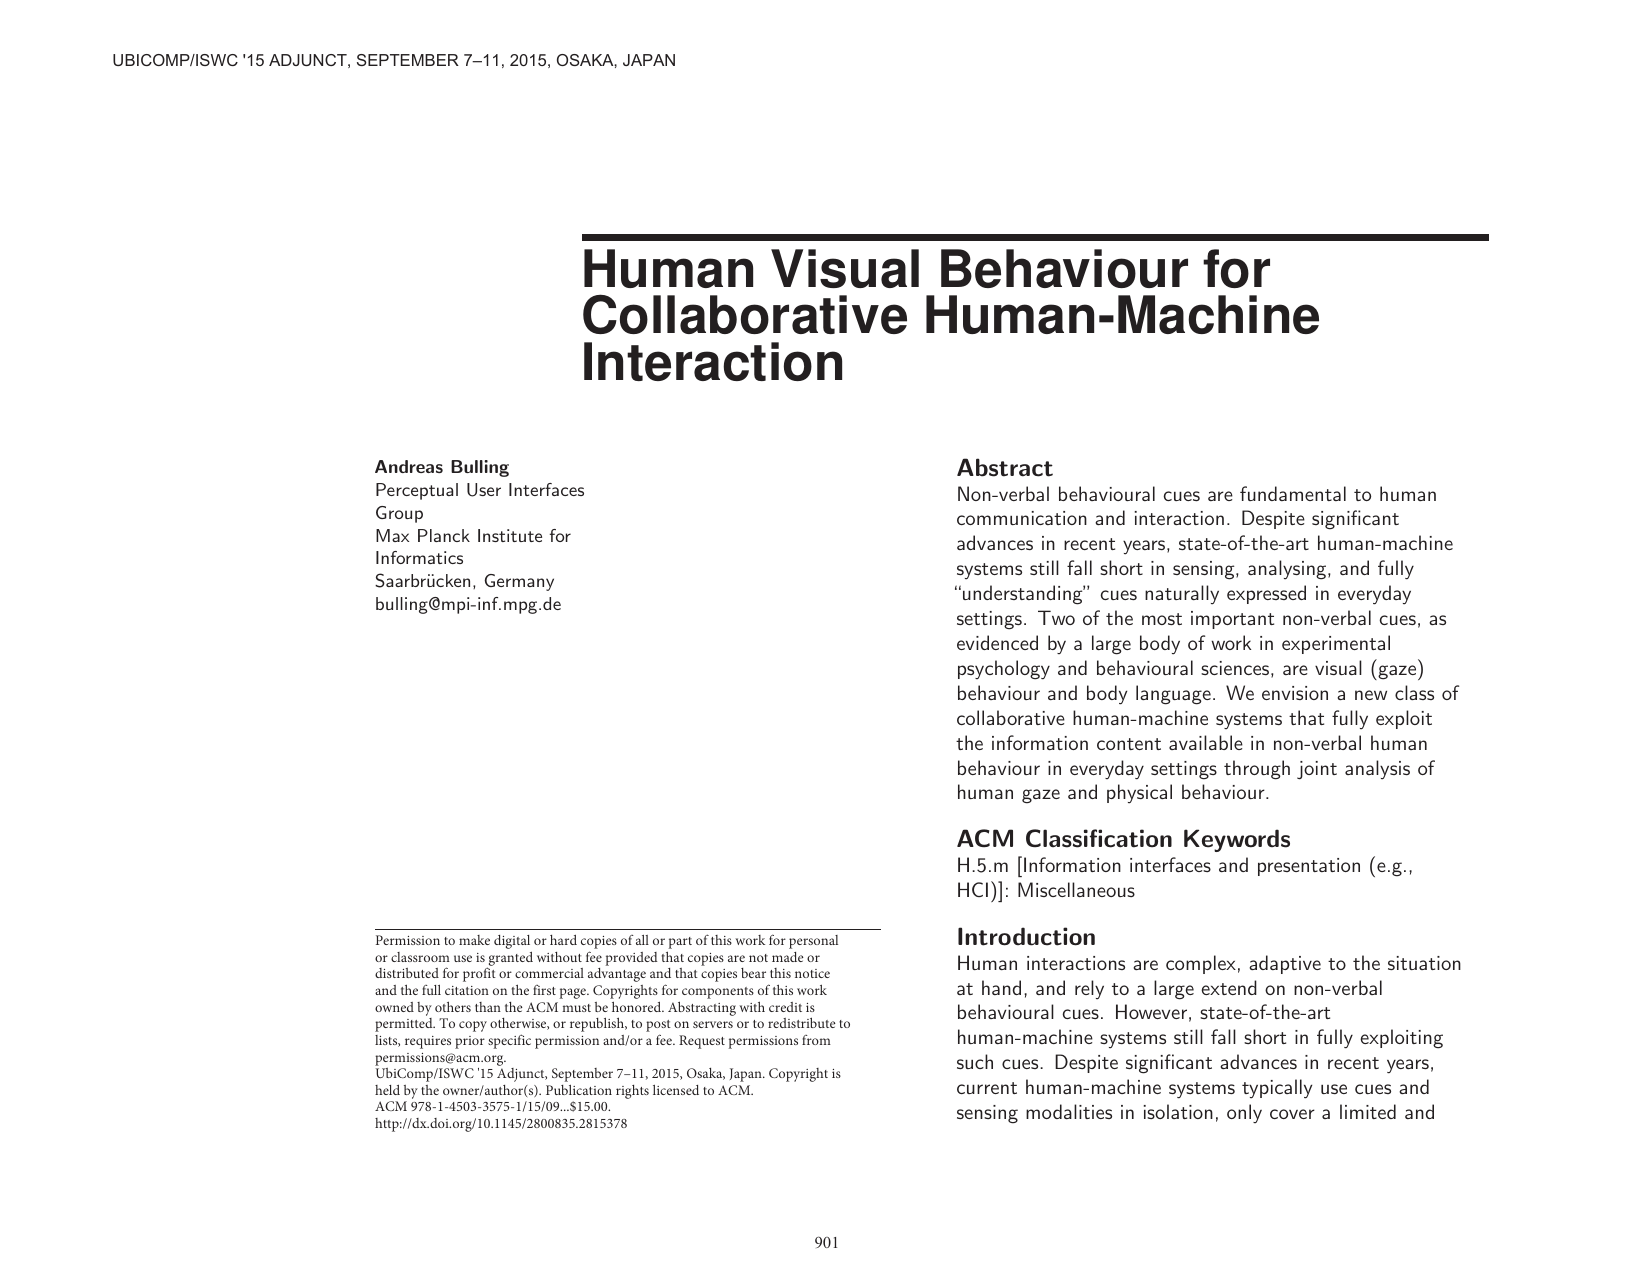 Human Visual Behaviour for Collaborative Human-Machine Interaction